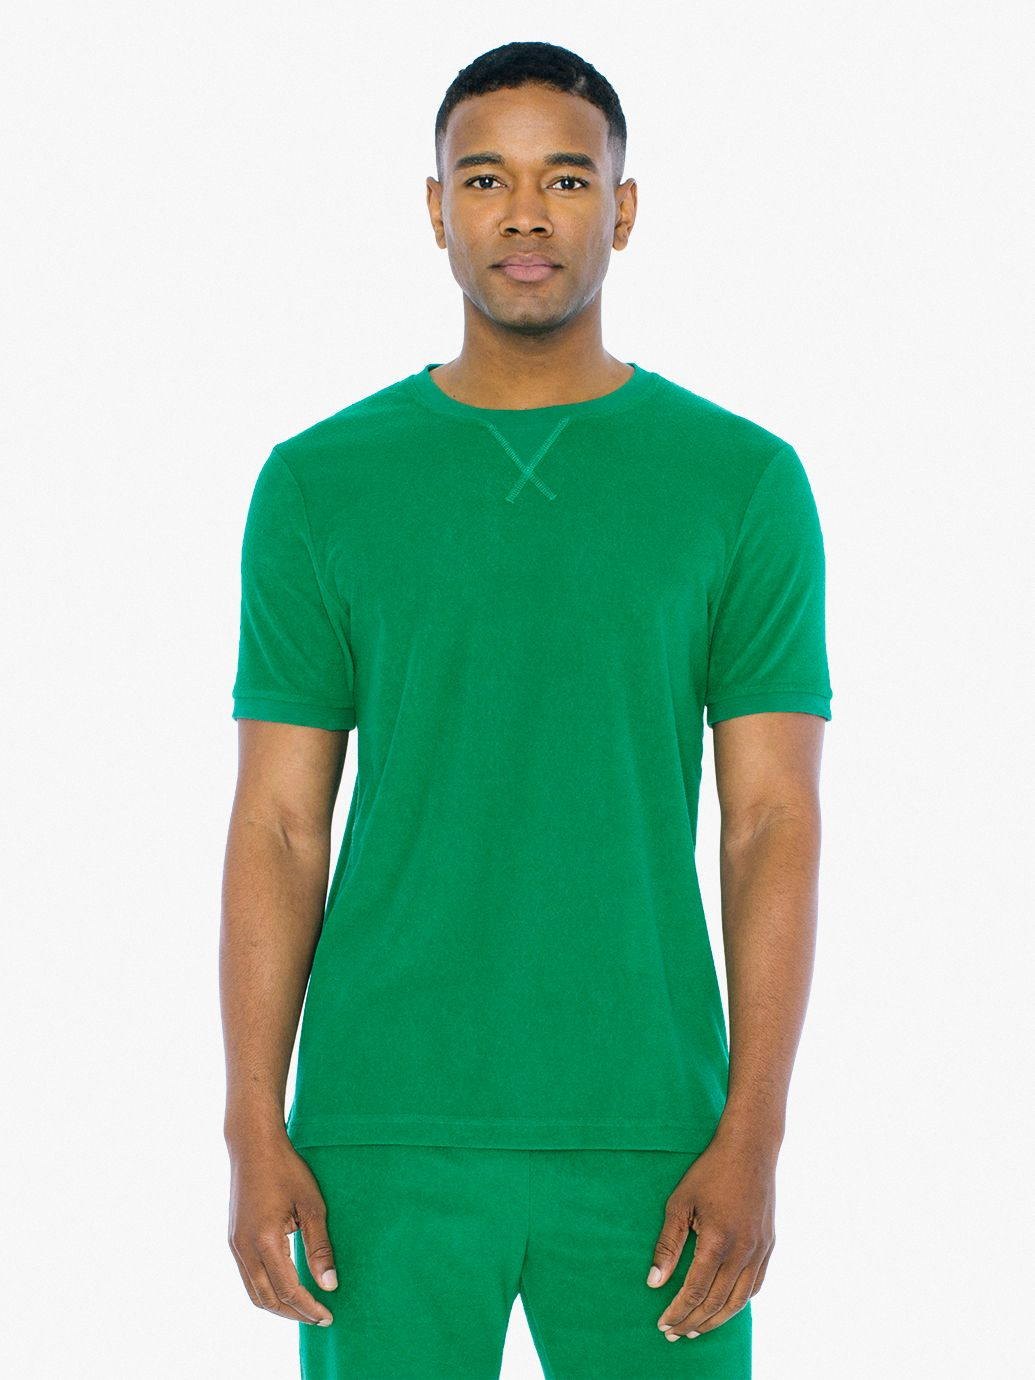 Loop Terry Sports T Shirt by American Apparel